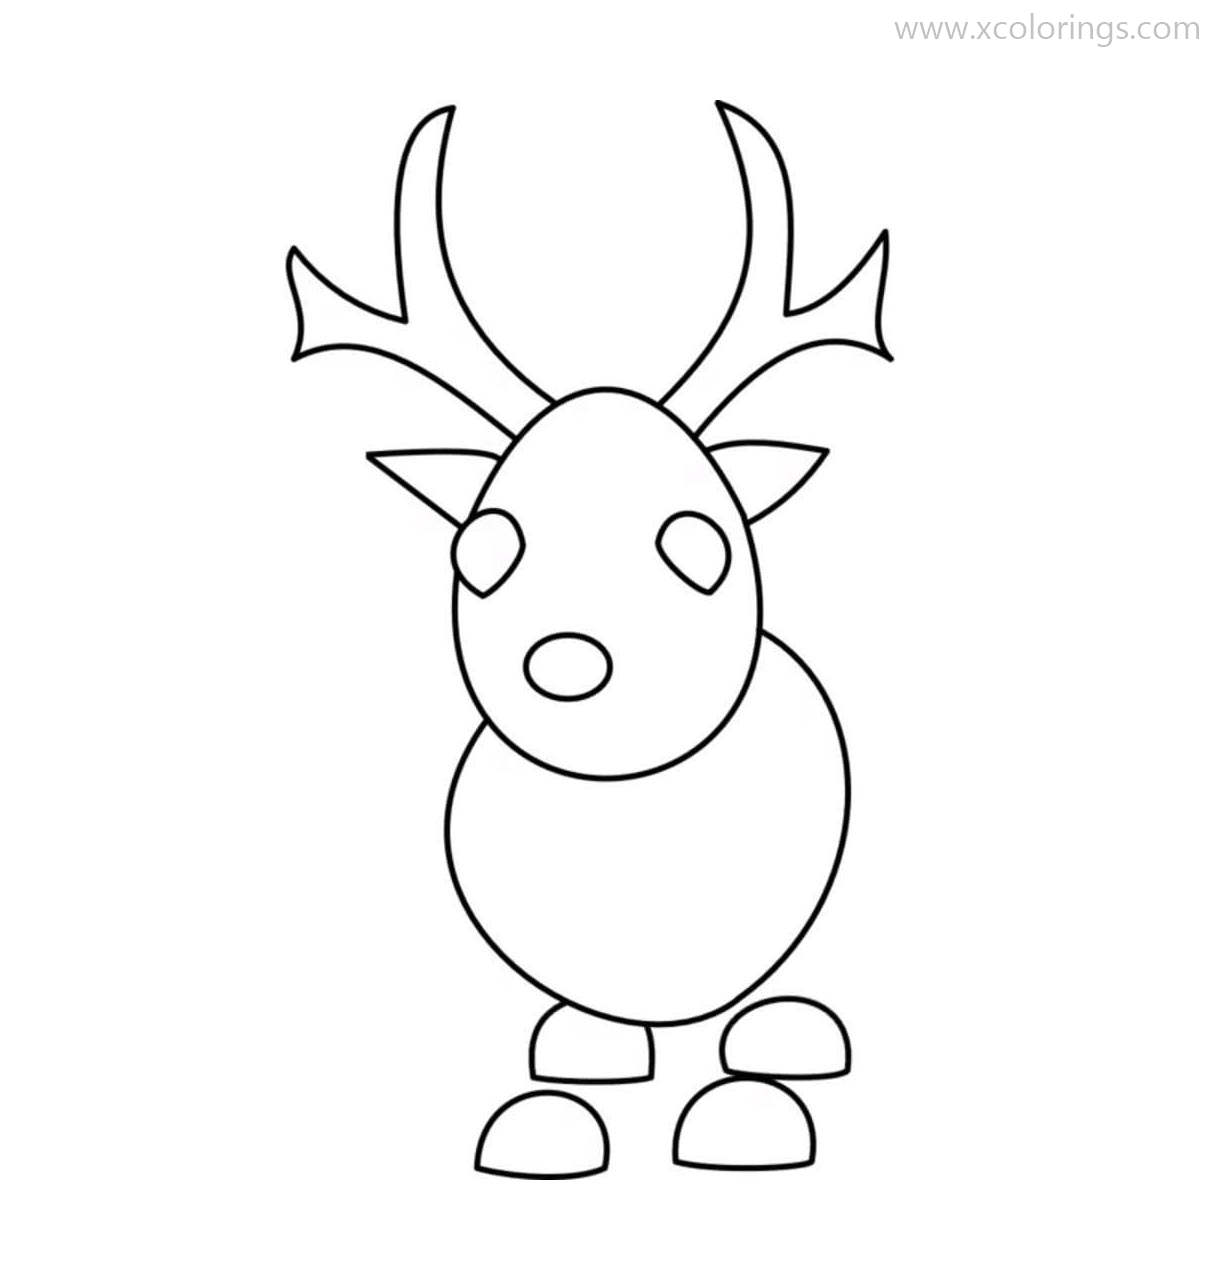 Roblox Adopt Me Coloring Pages Reindeer - XColorings.com